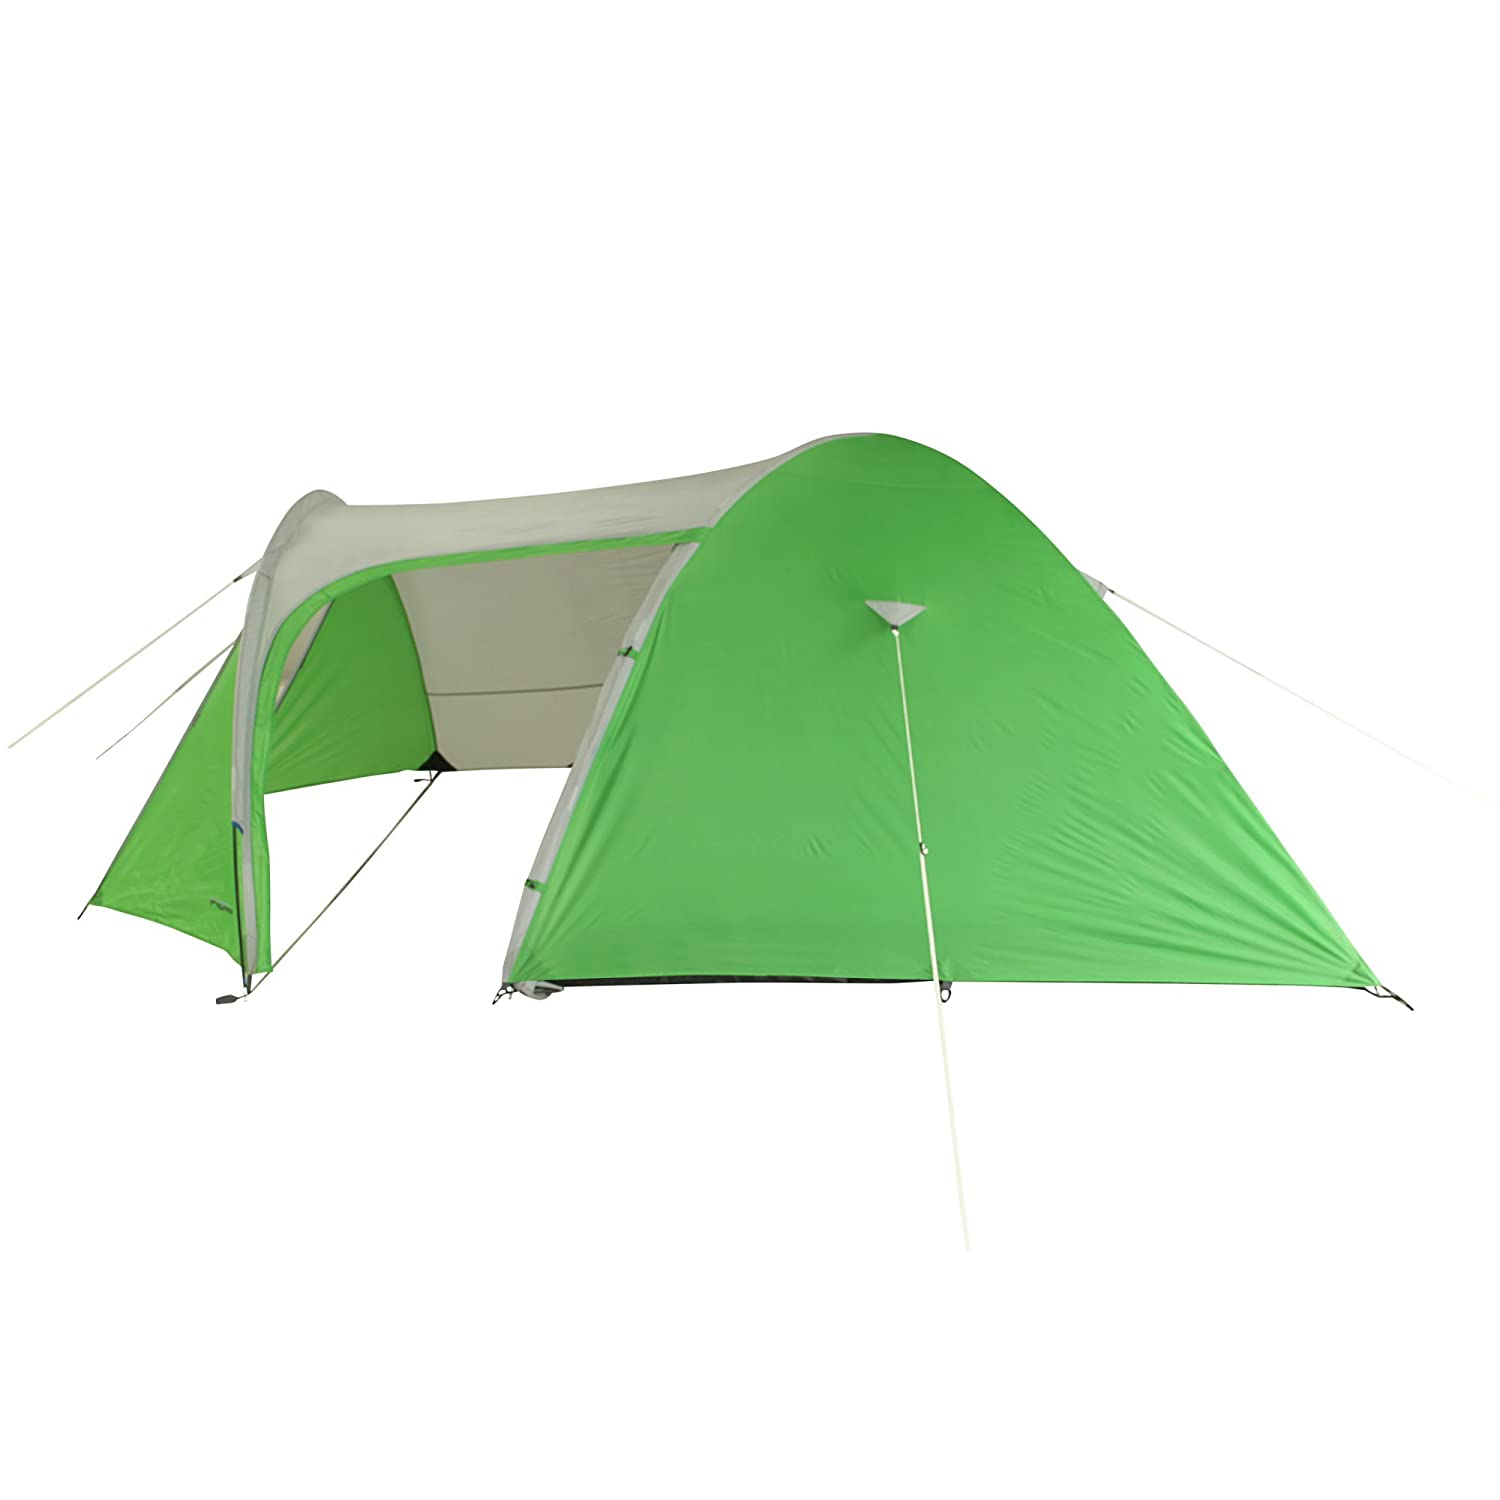 Fridani DSG 400 4 person dome tent with vestibule, 3000mm, 340x240x130 cm, 4,5kg